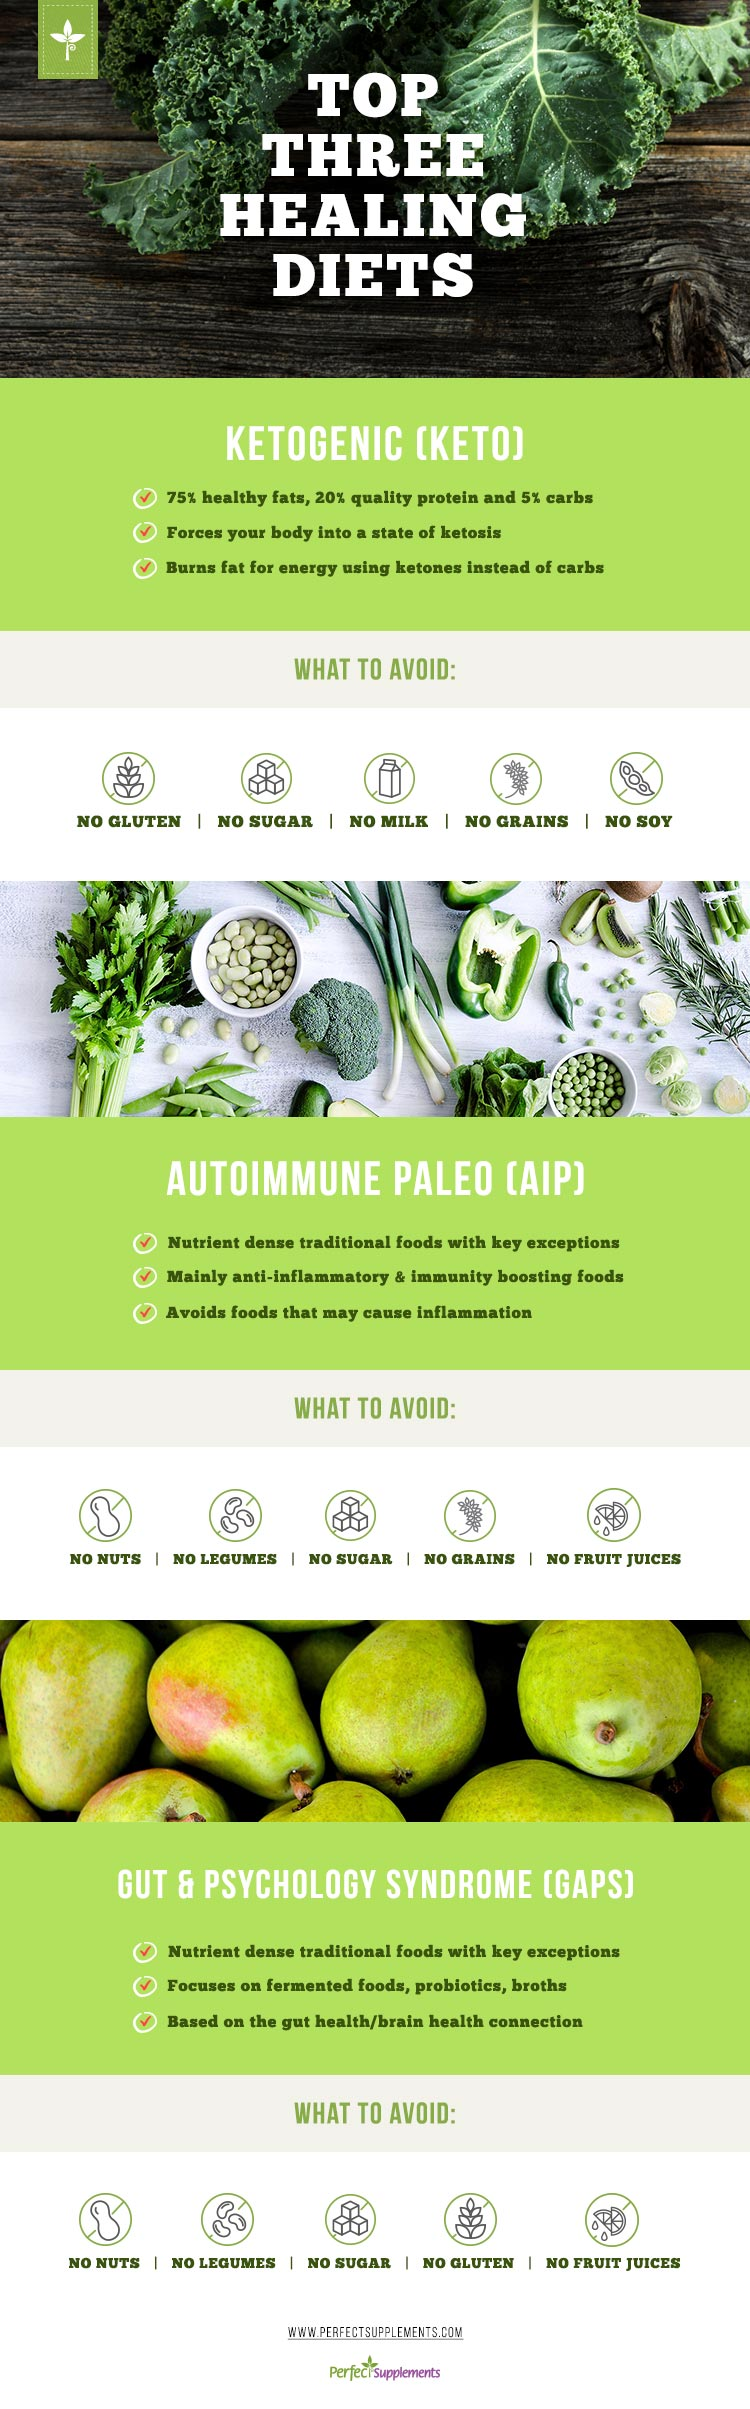 3 Popular Healing Diets [KETO-GAPS-AIP] Compared, Everything You Need to Know | Perfect Supplements